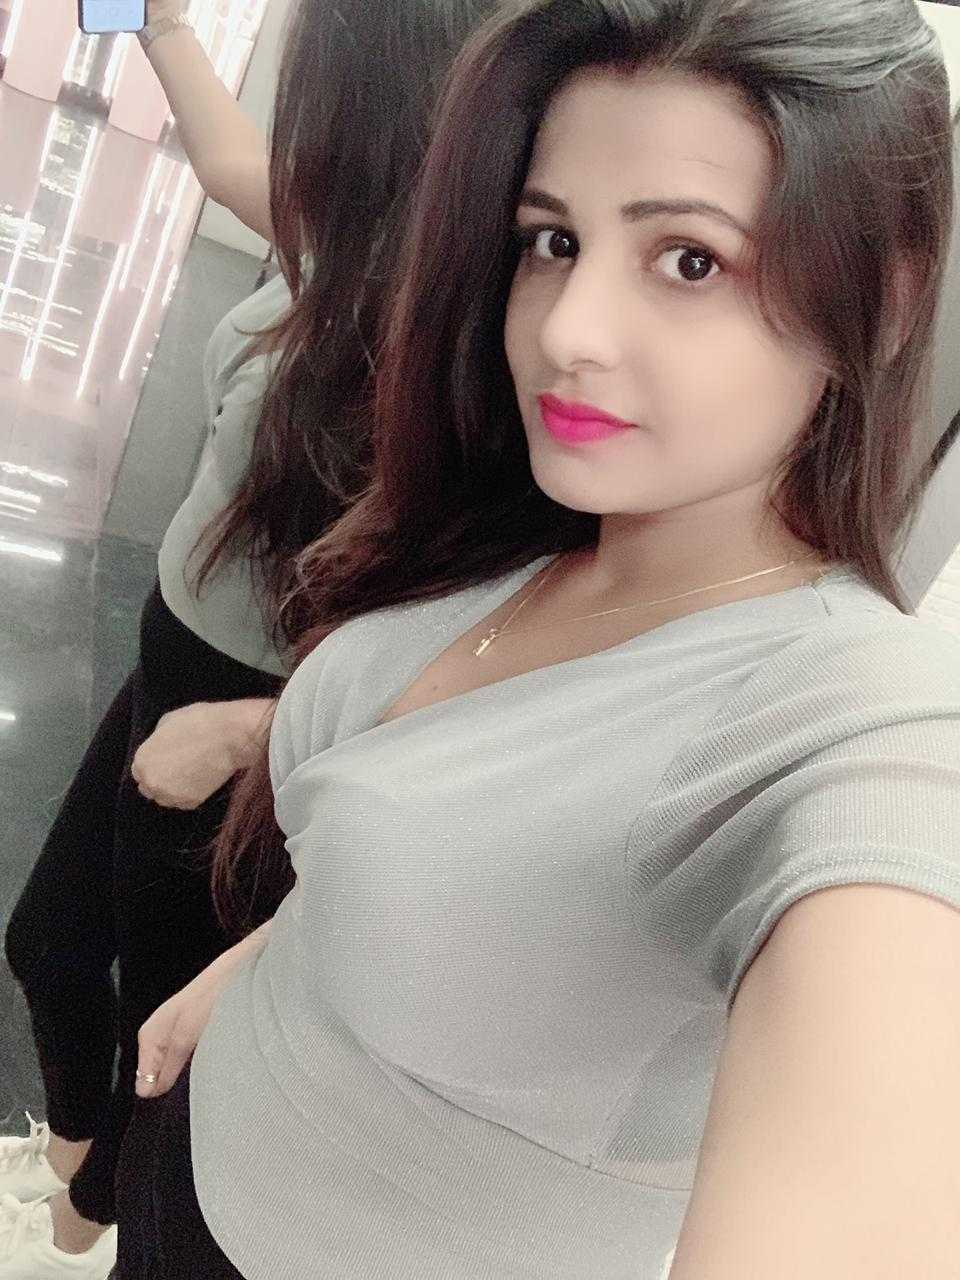 The Most premium call girl service in Delhi | delhi call girl photo and number